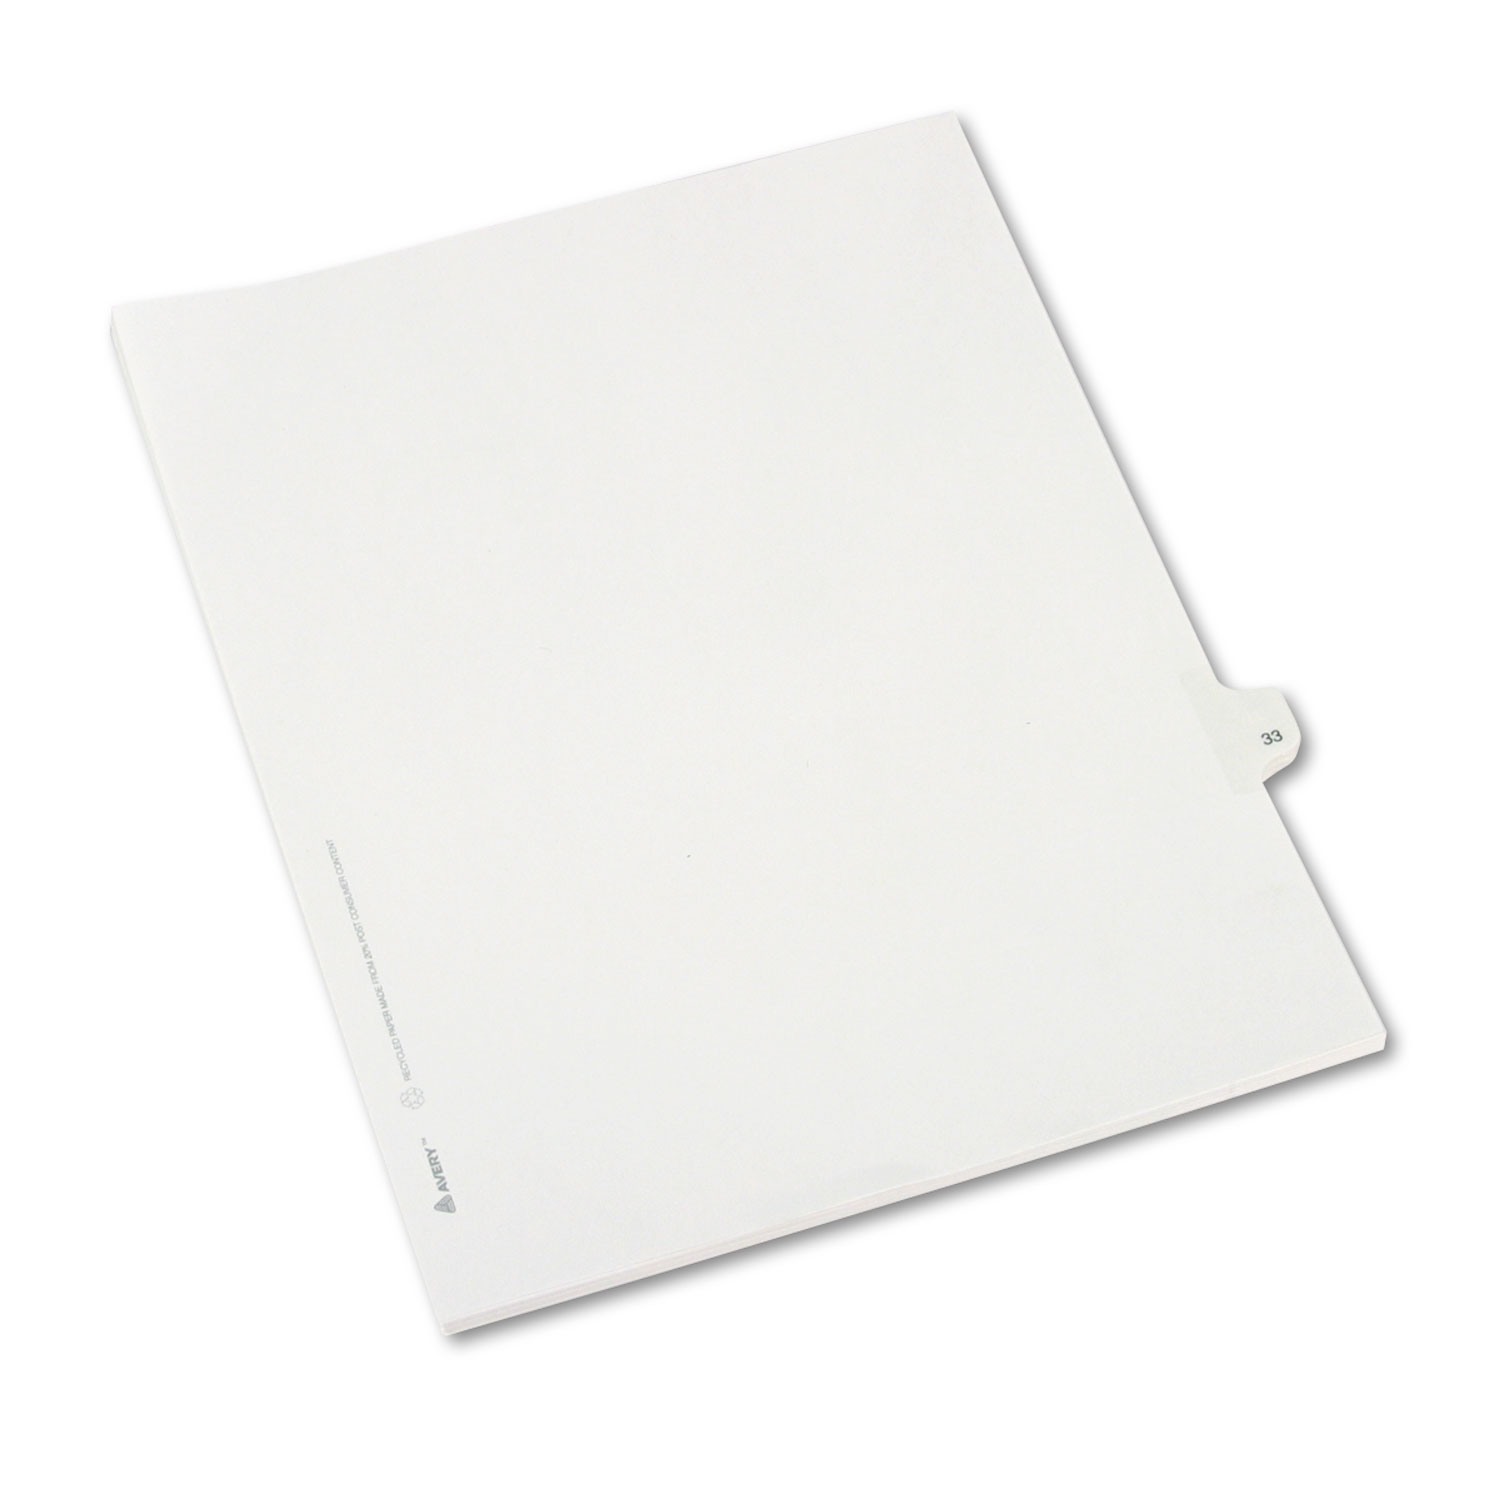 Title: 33 White Avery Dennison 82231 Allstate-Style Legal Side Tab Divider 25//Pack Letter